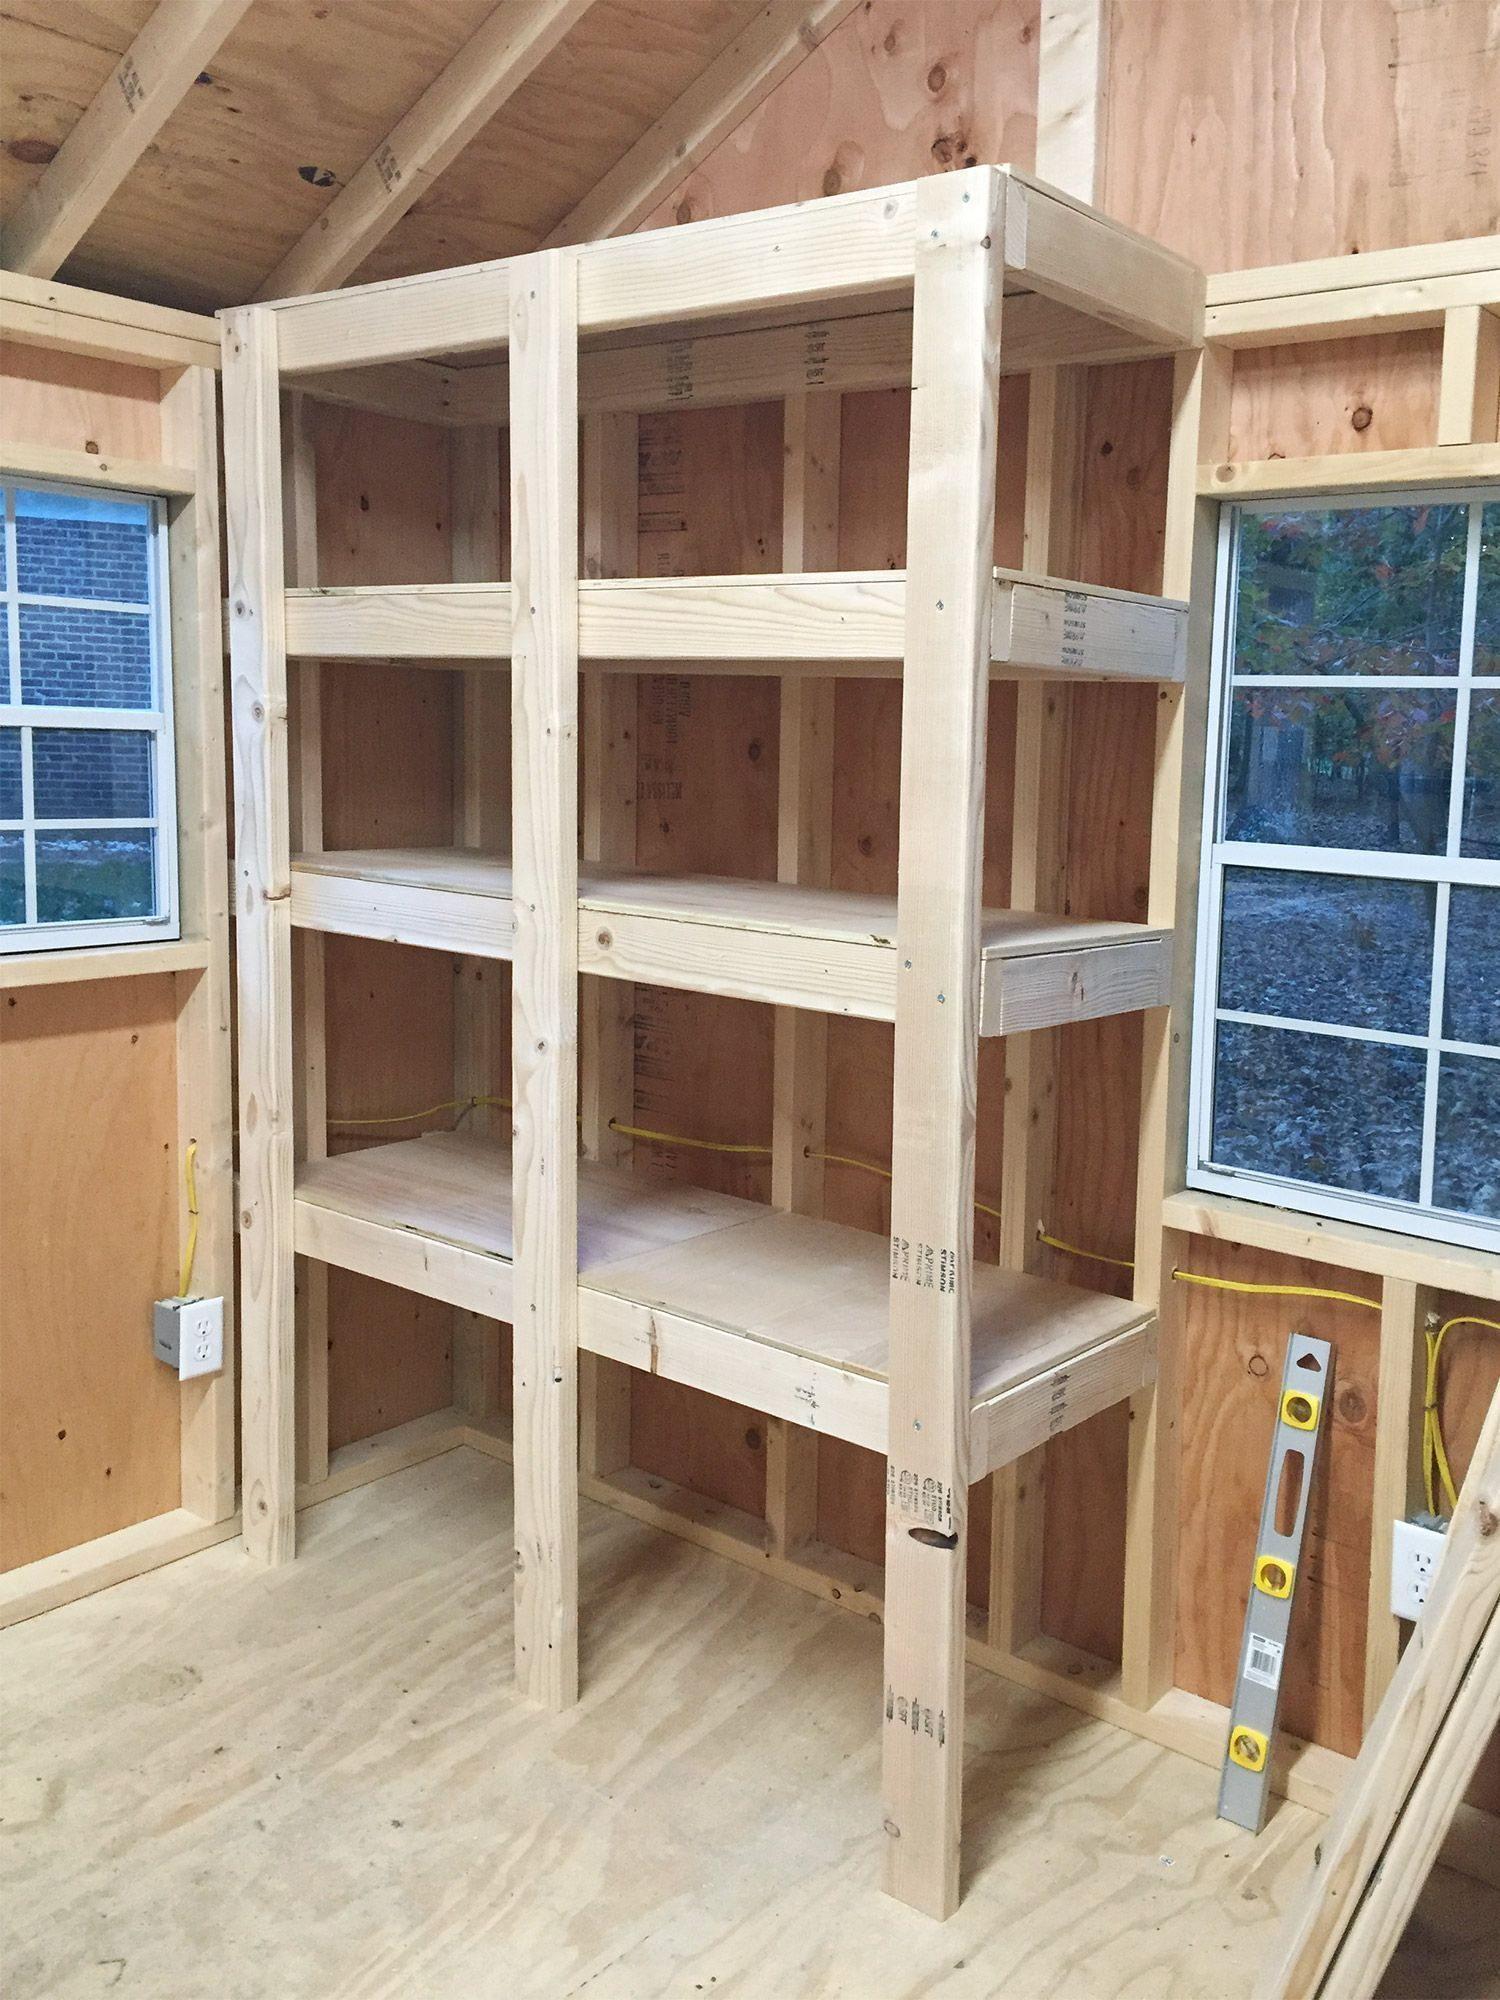 How To Add Diy Shelving To Your Garage, Workshop, Or